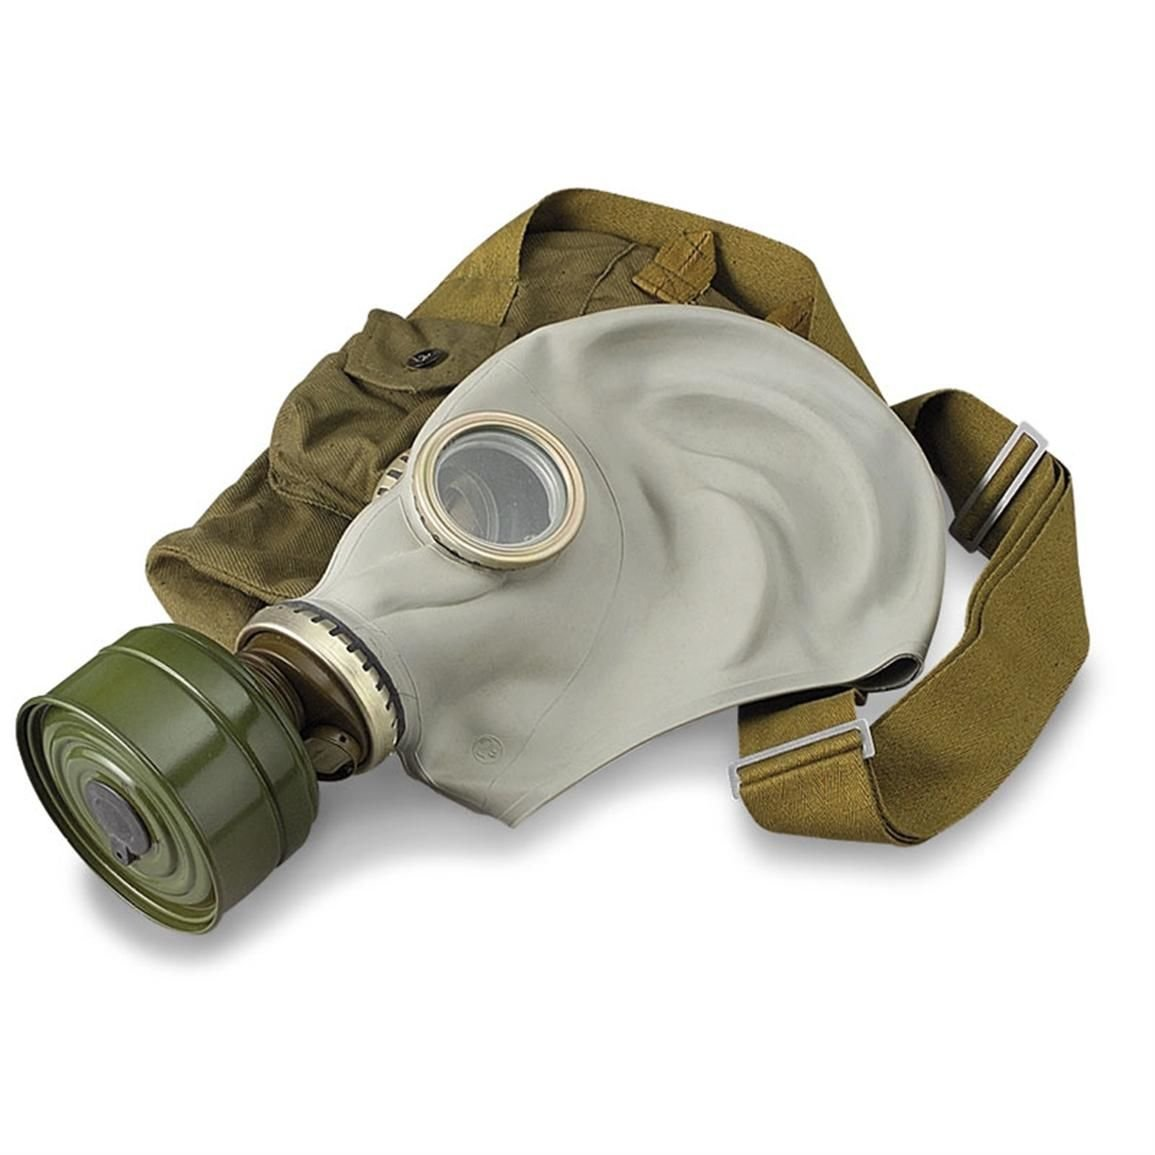 Rubber Mask for Respiratory Protection - LARGE by GP (Image #3)